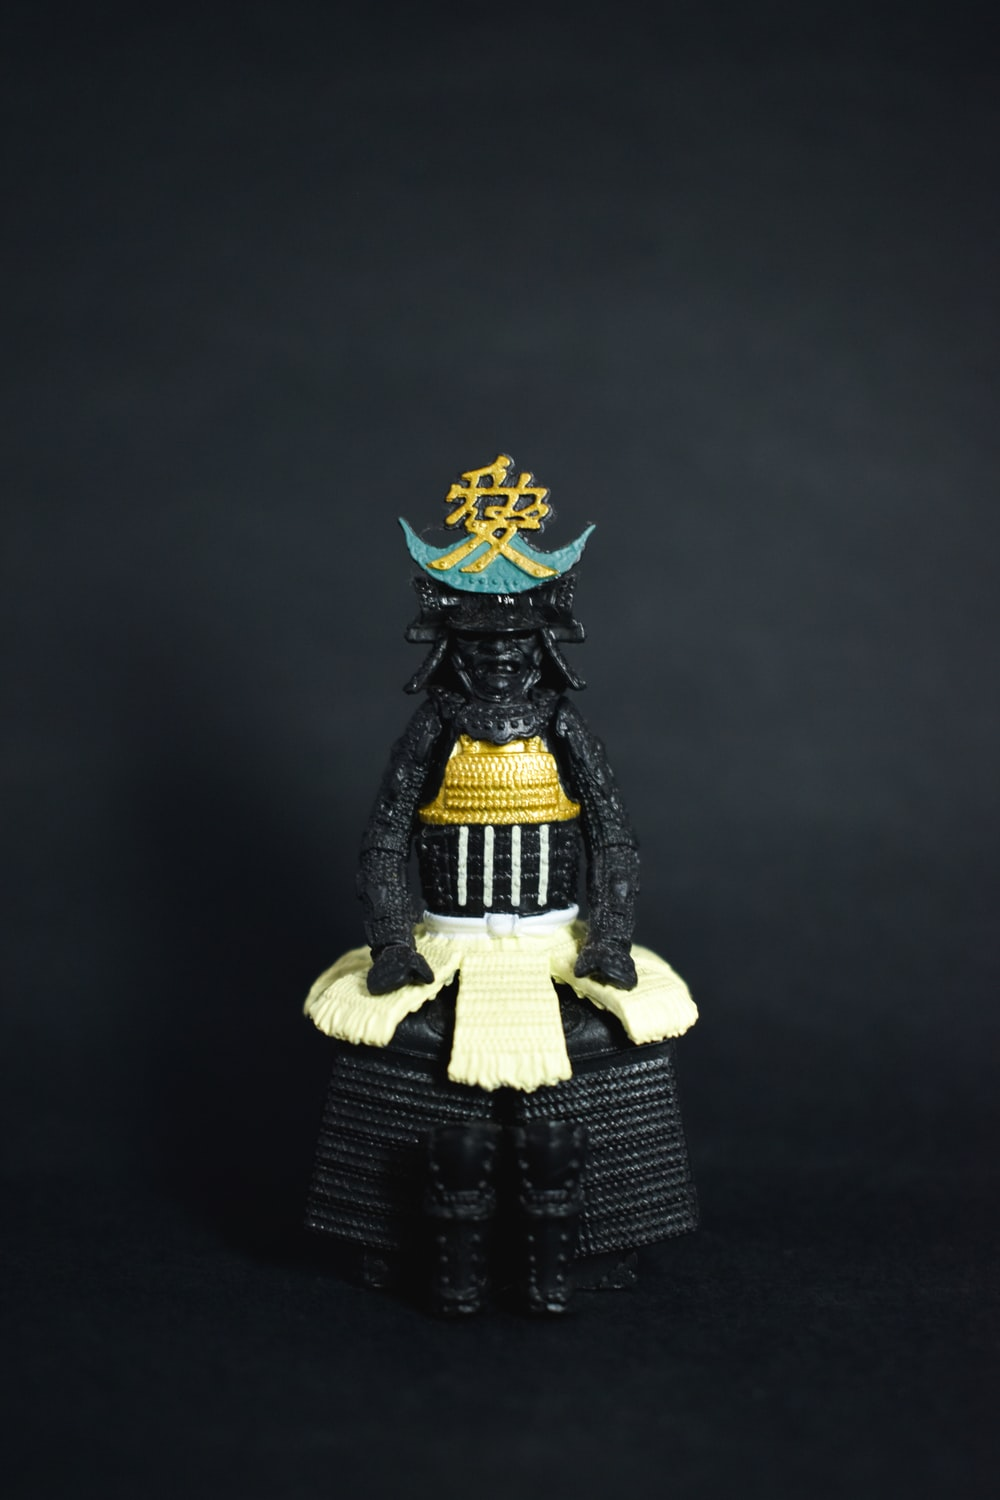 black, yellow, and blue deity figurine